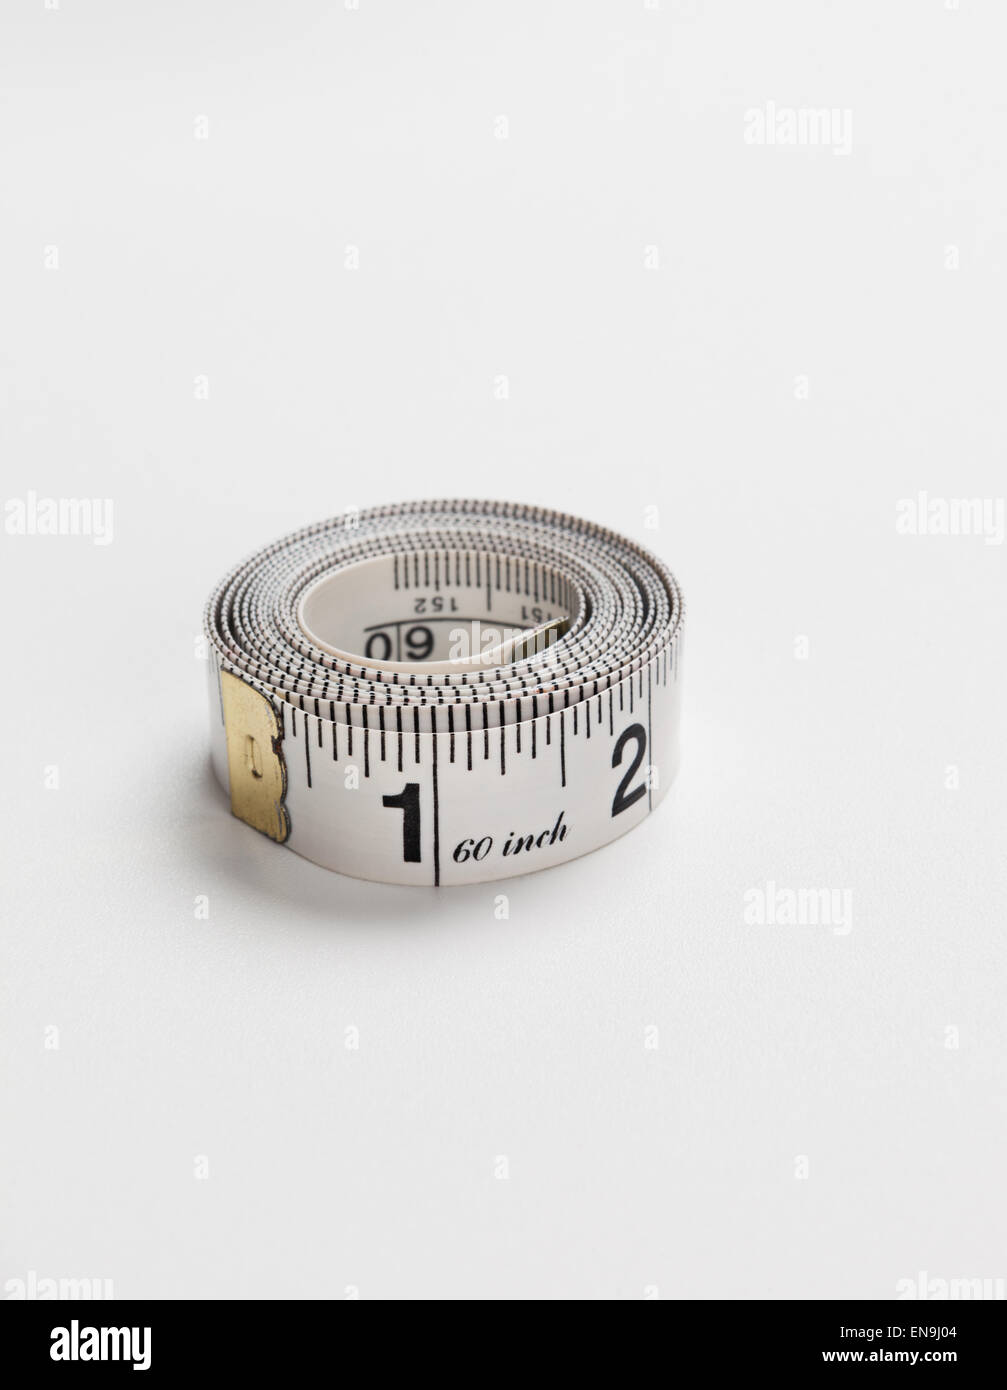 A tape measure on a white background - Stock Image